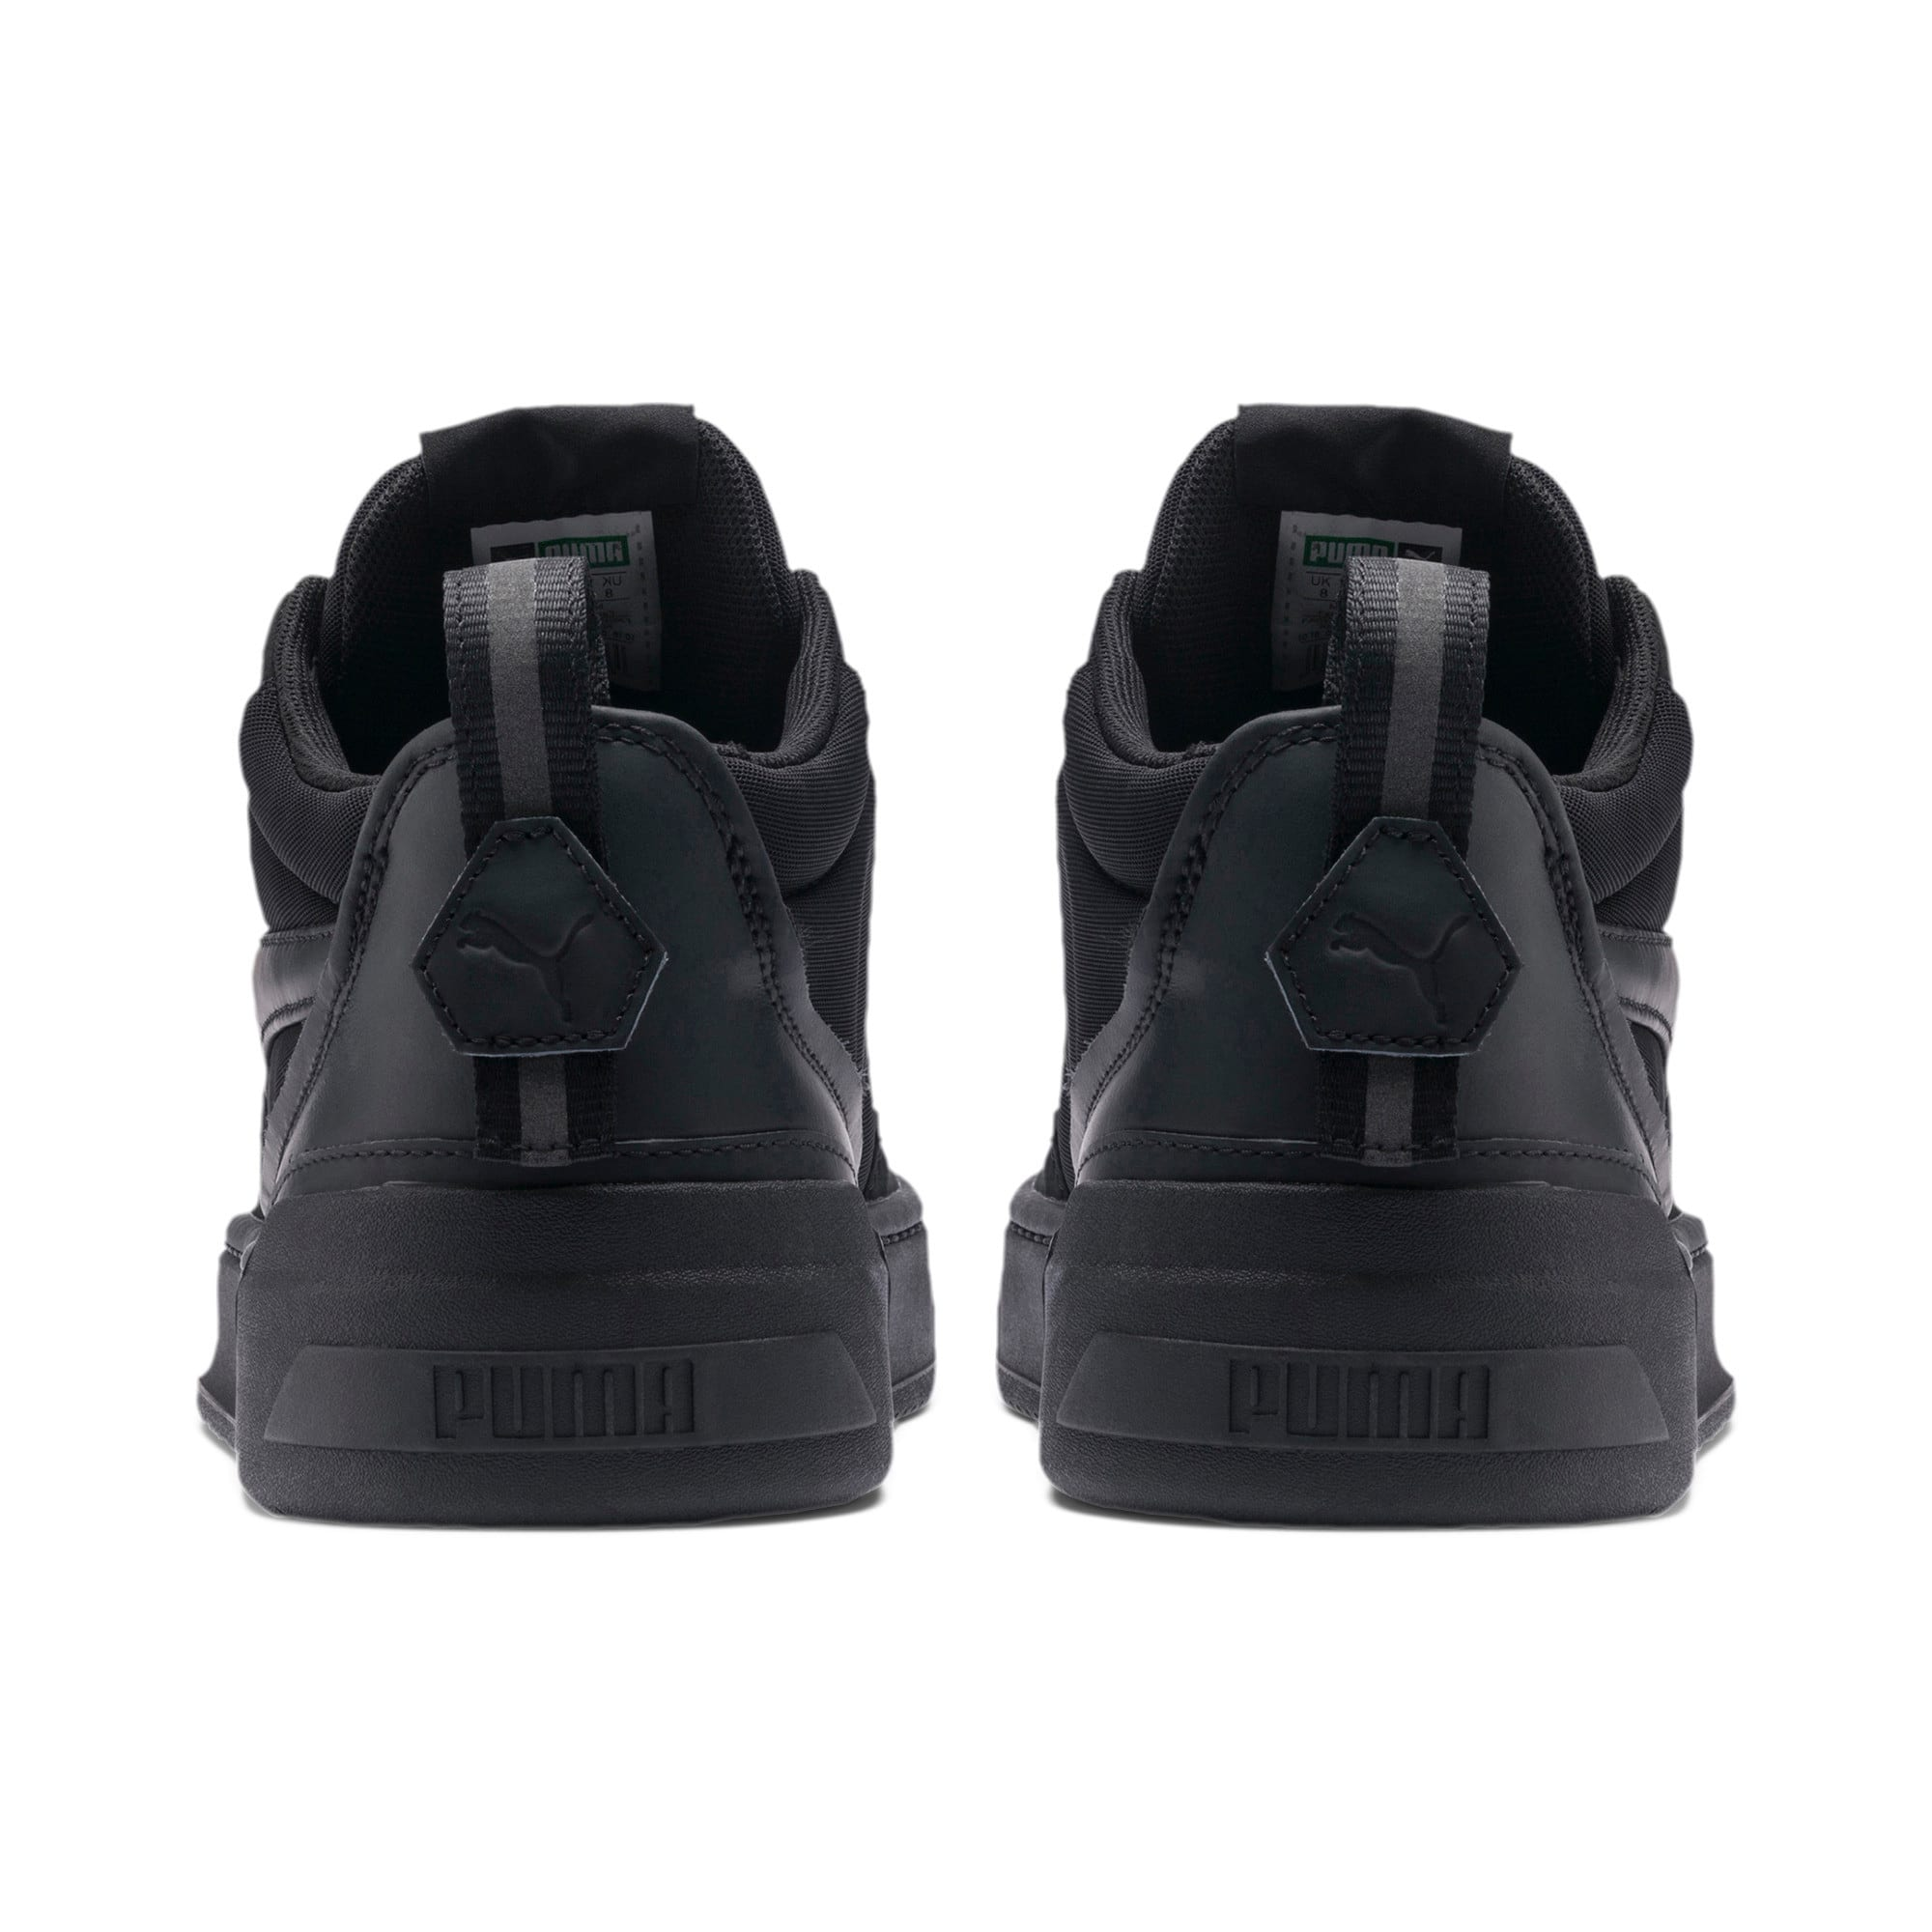 Thumbnail 3 of Cali Zero Demi Triple Black Trainers, Puma Black-Puma Black, medium